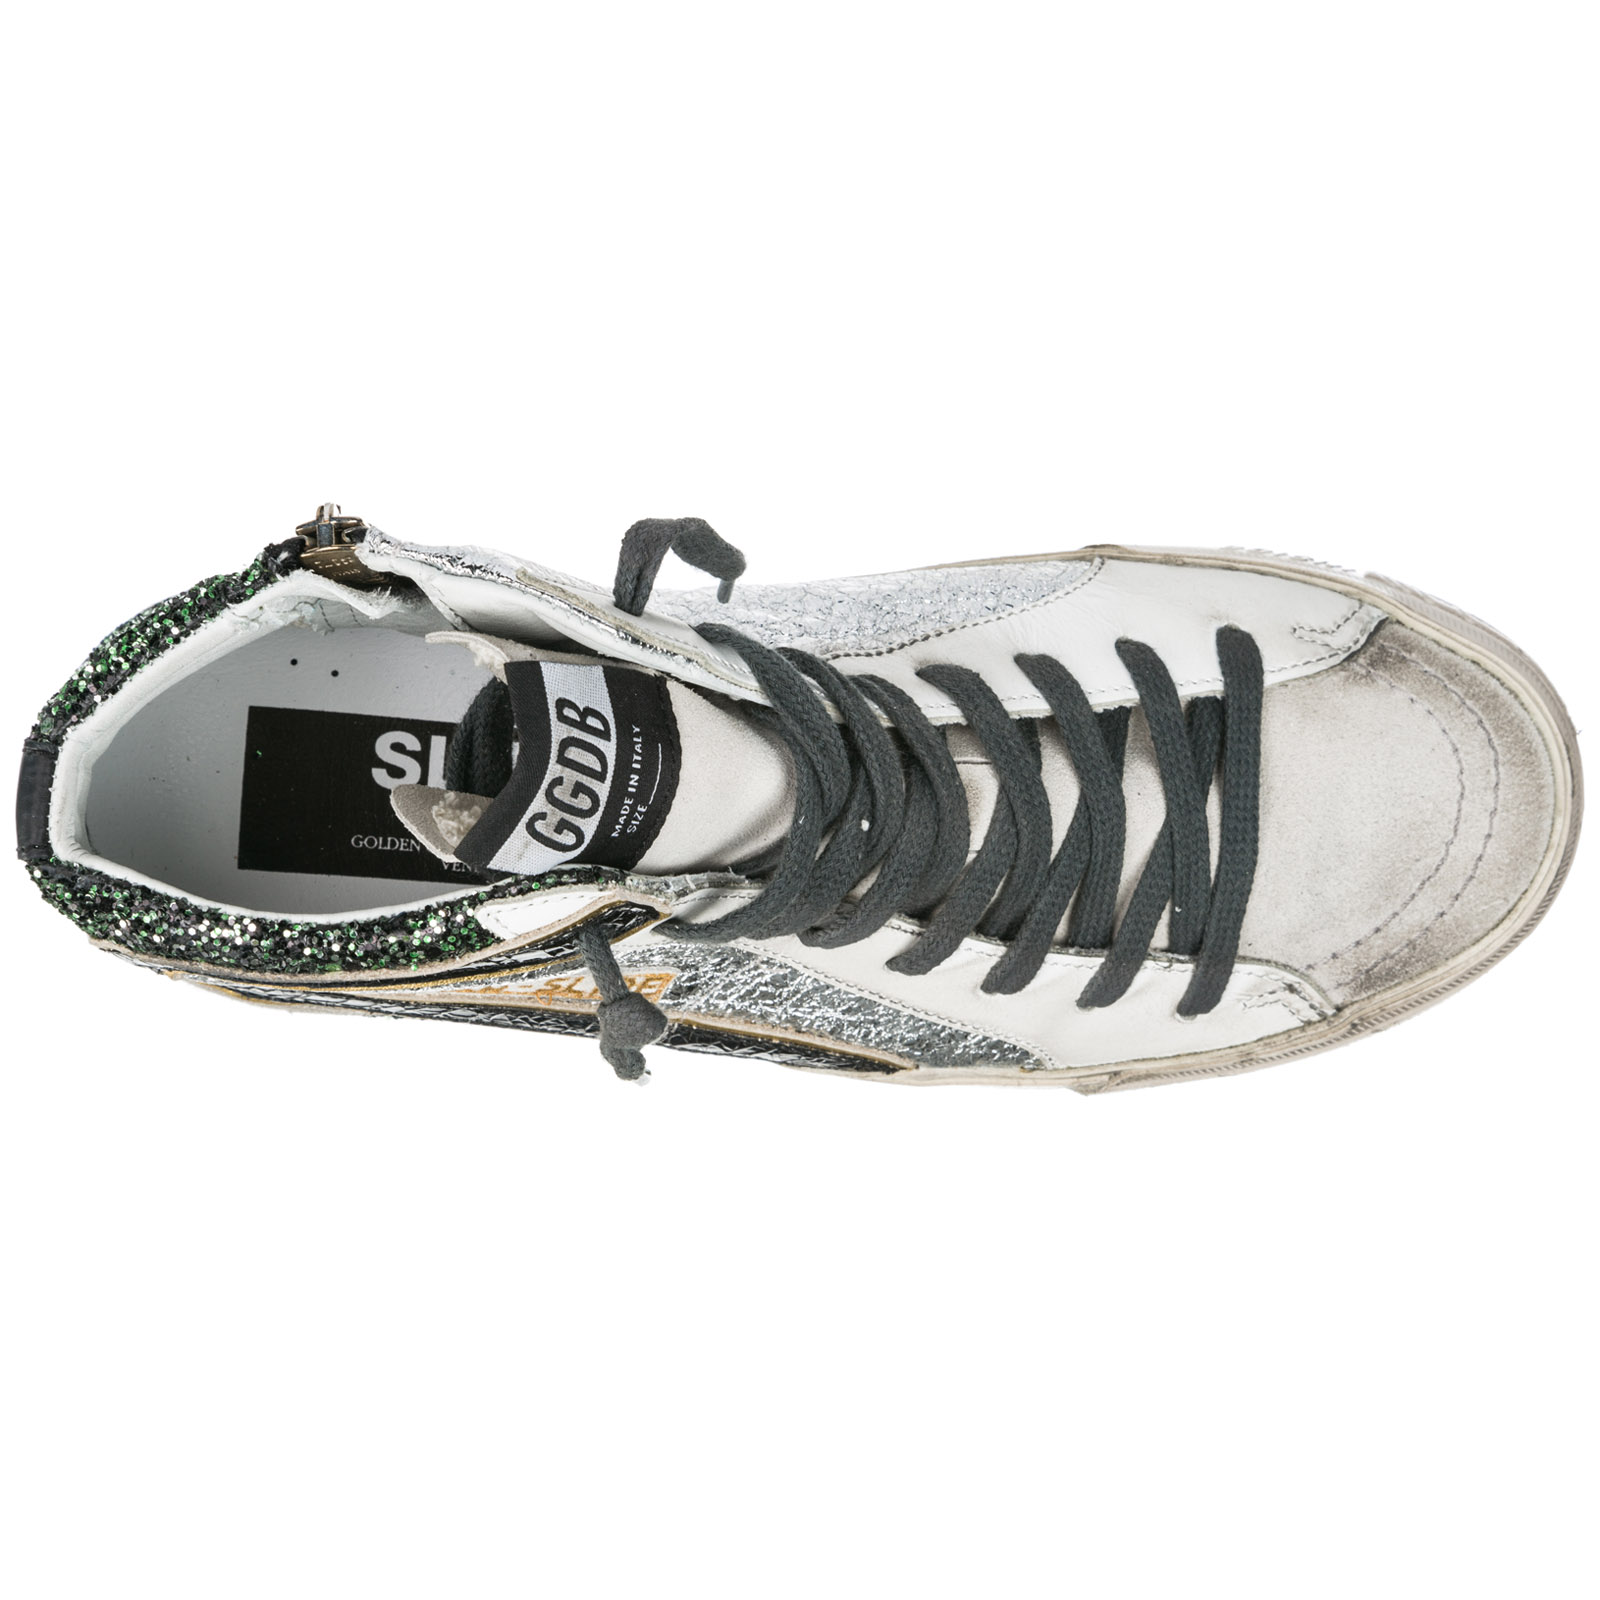 Women's shoes high top leather trainers sneakers slide